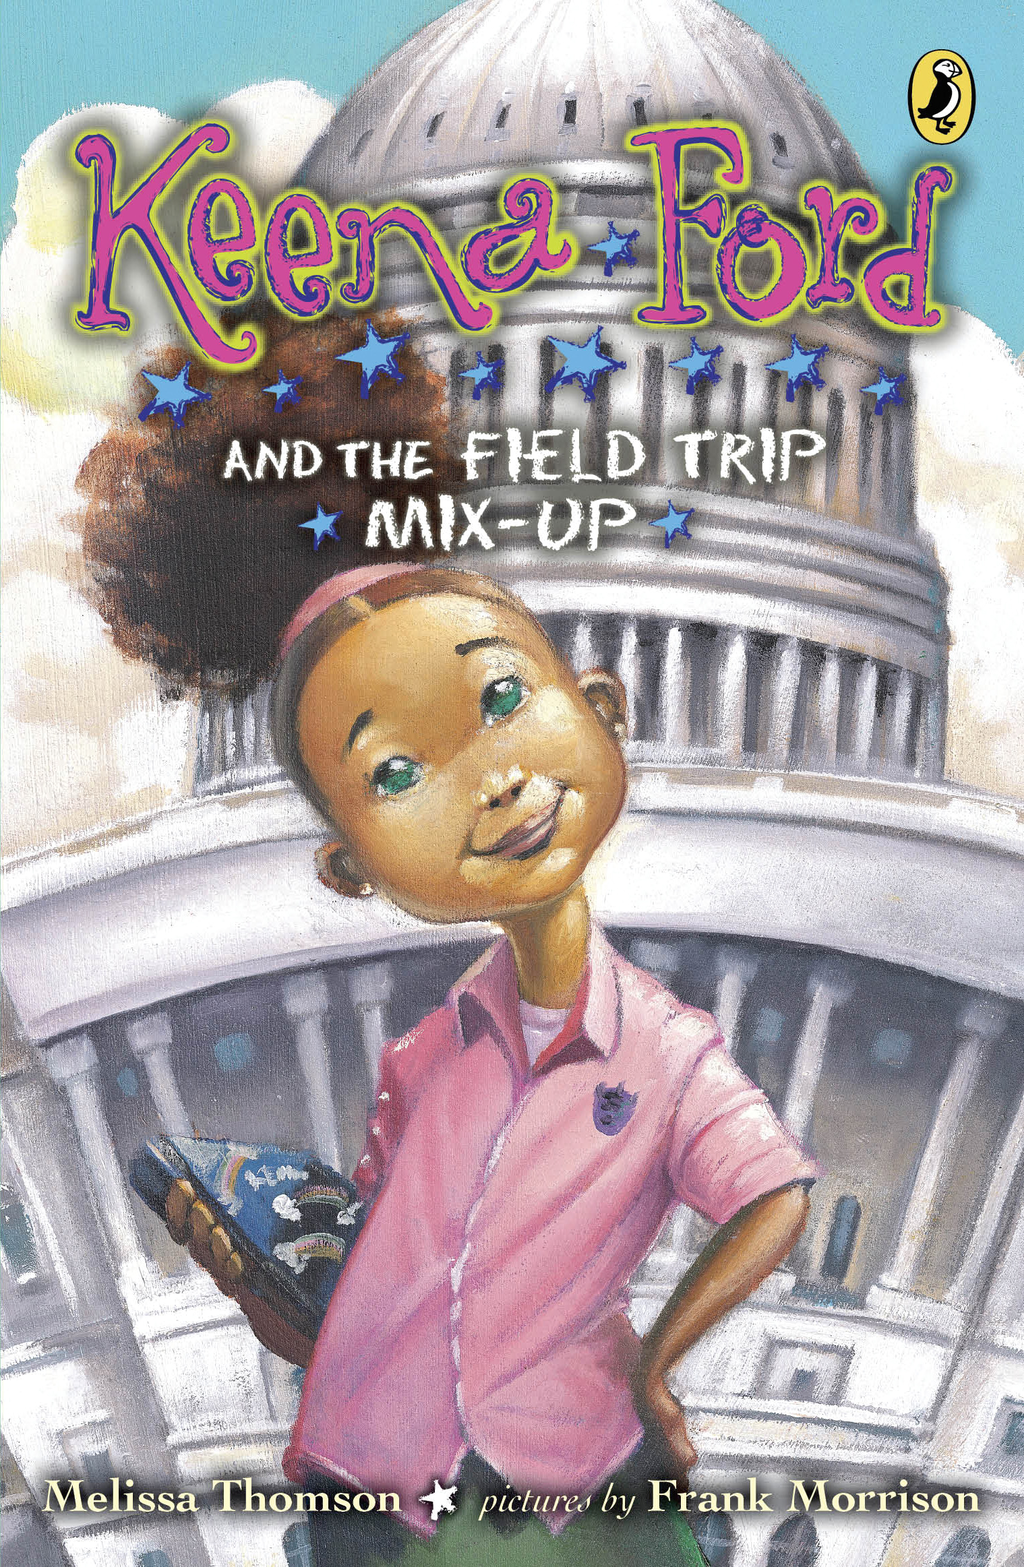 Keena Ford and the Field Trip Mix-Up By: Melissa Thomson